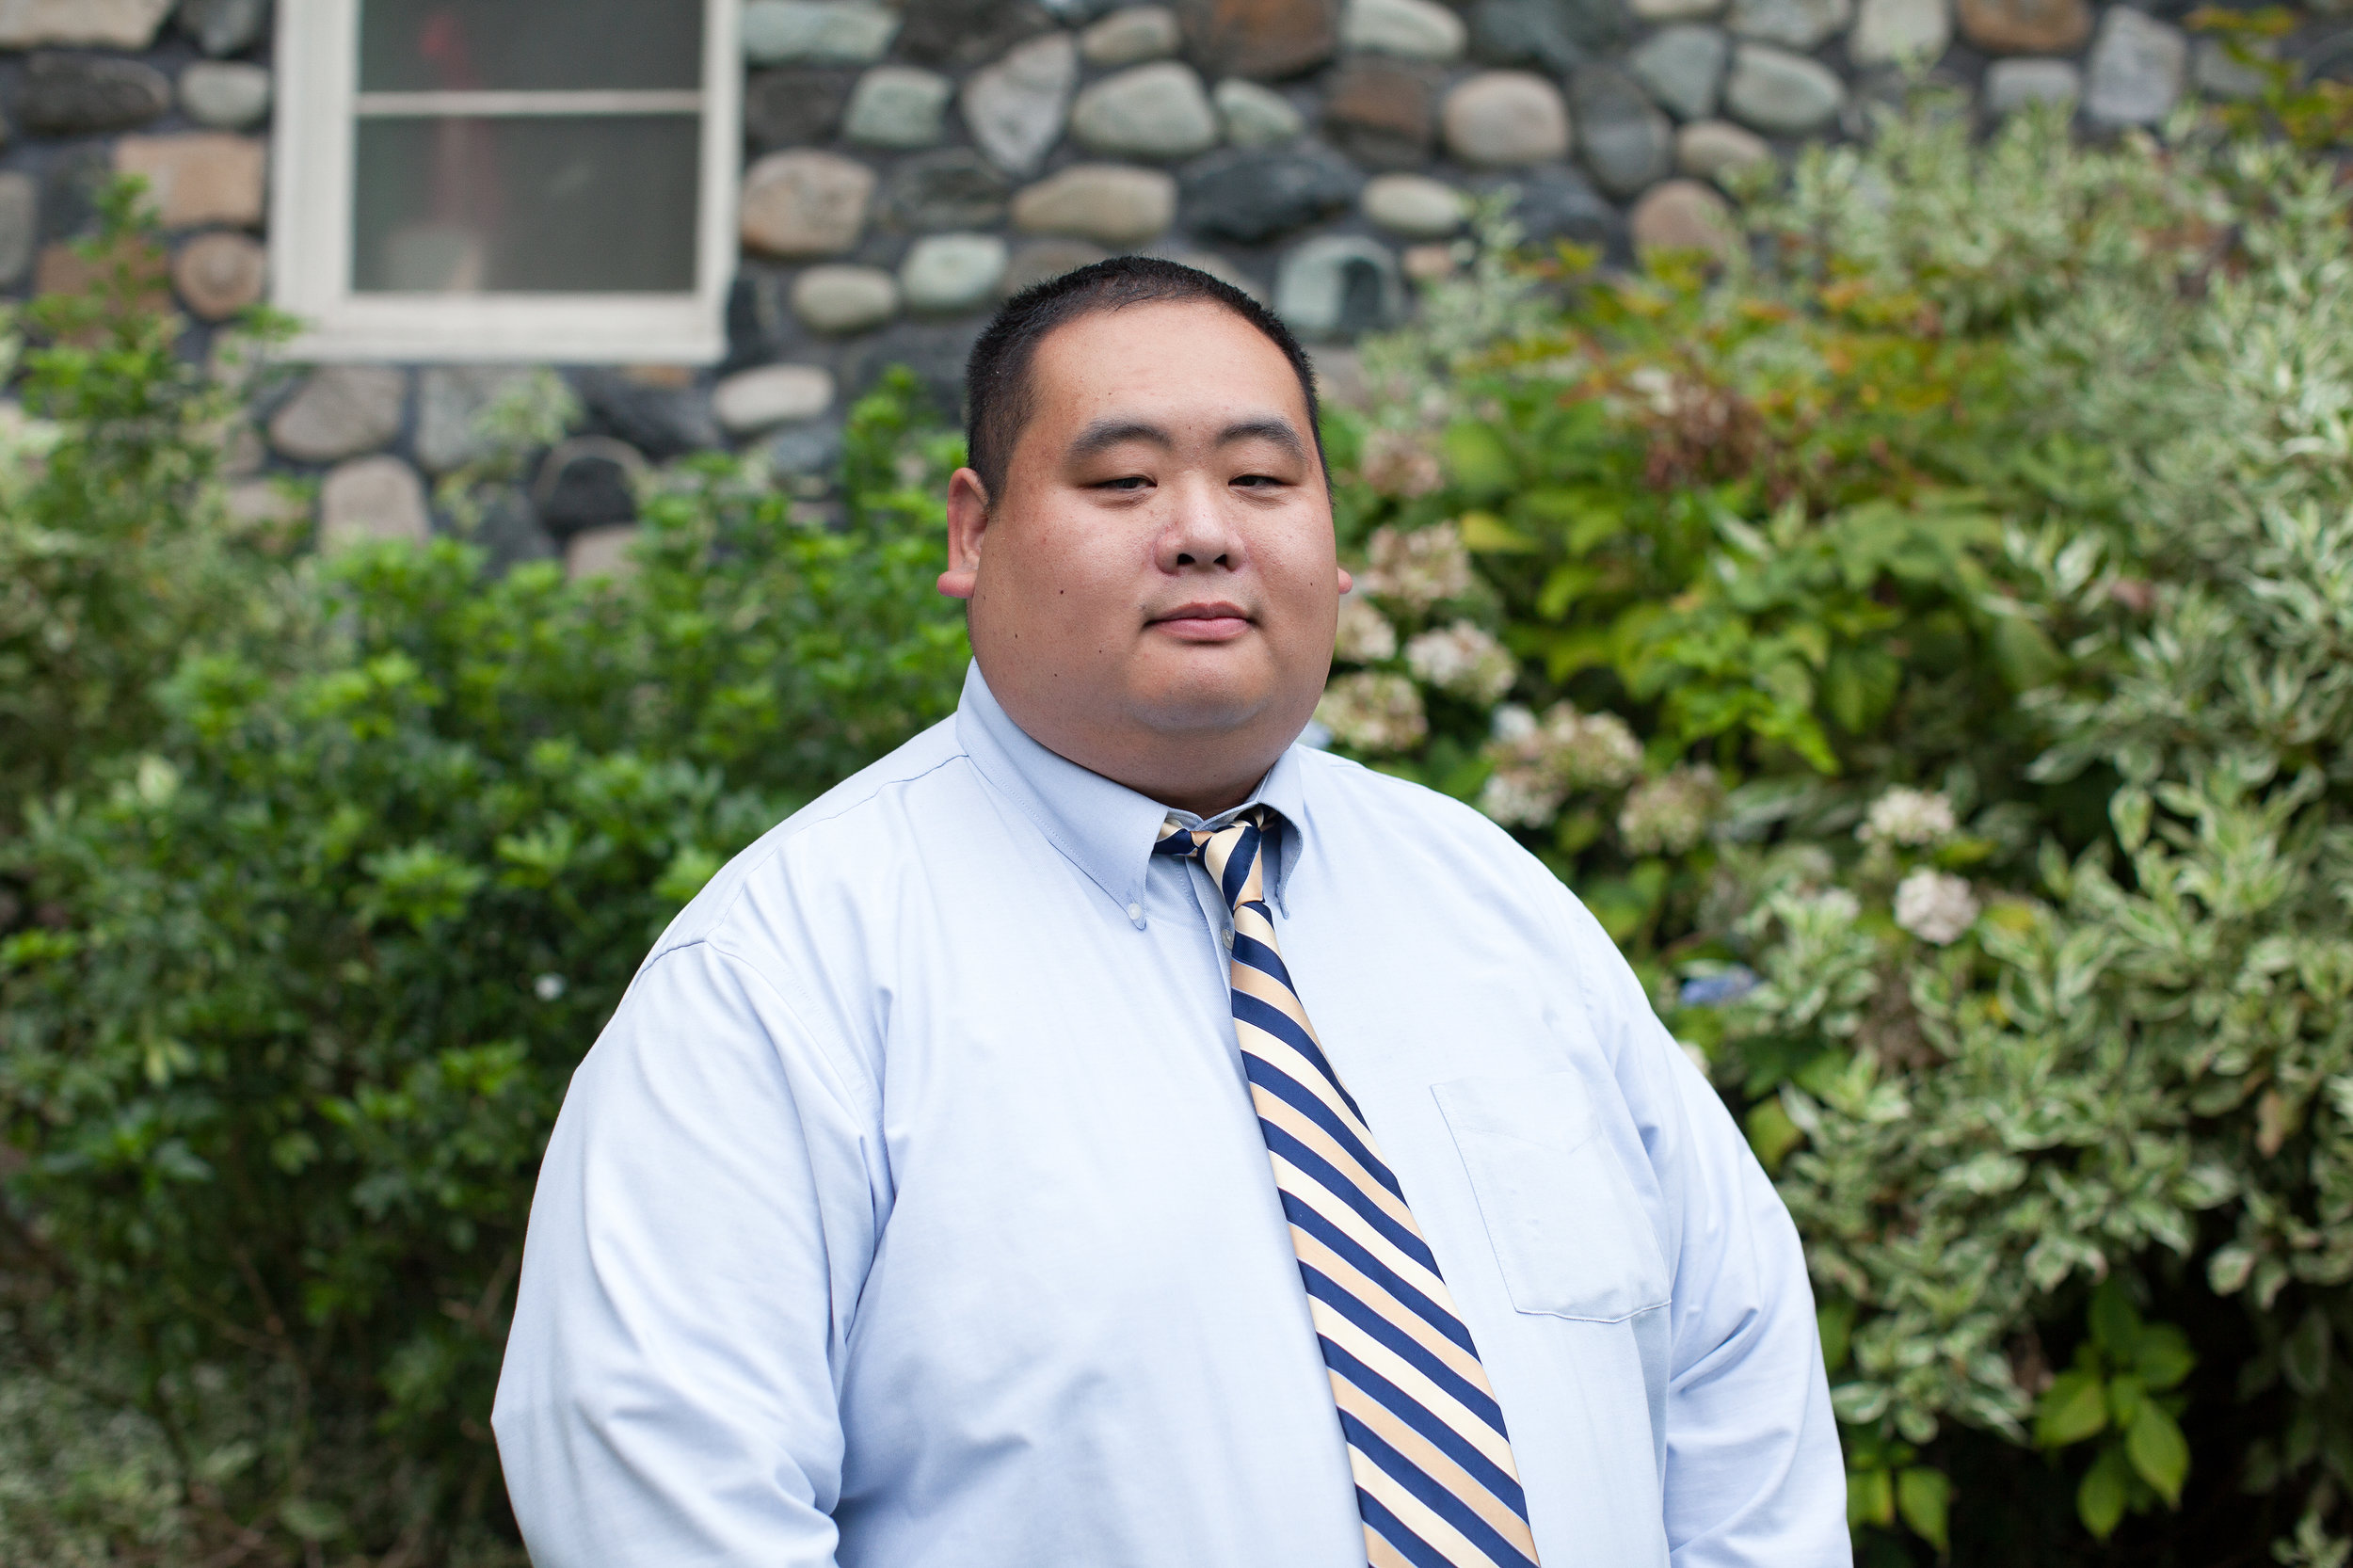 Matthew Kirchner, Assistant Security Manager